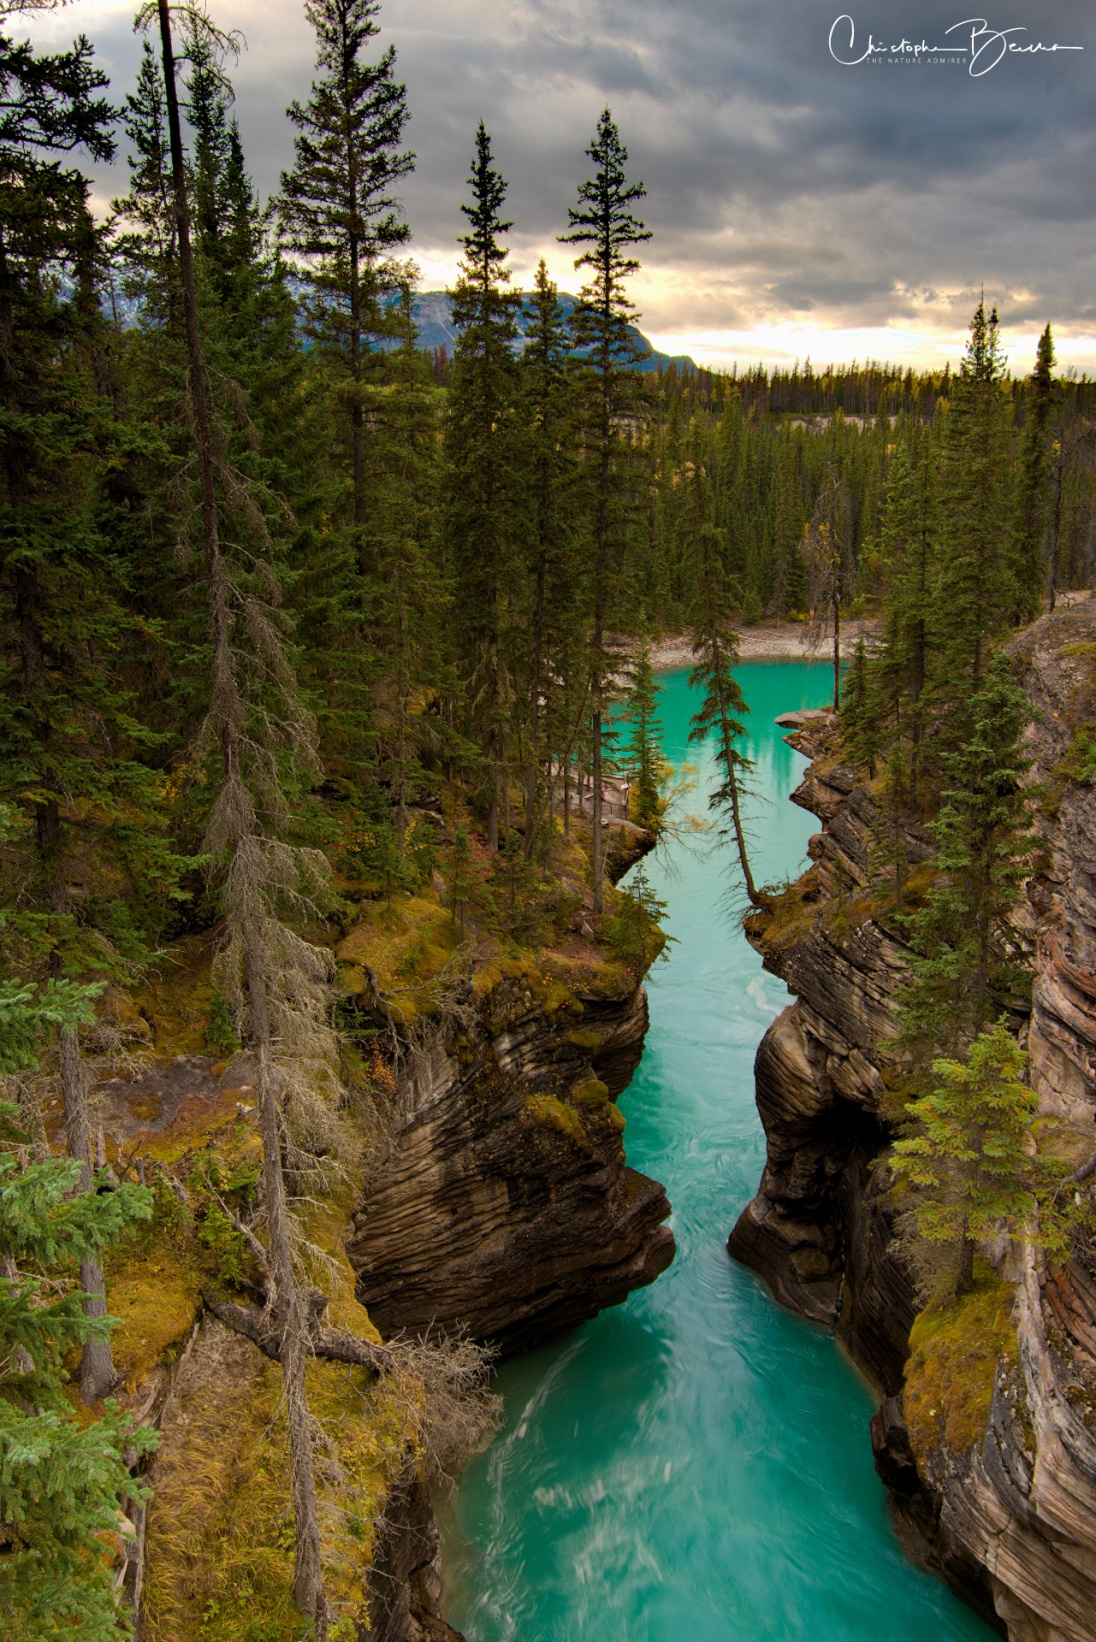 Just after the falls, the Athabasca river continues its course through the canyon.